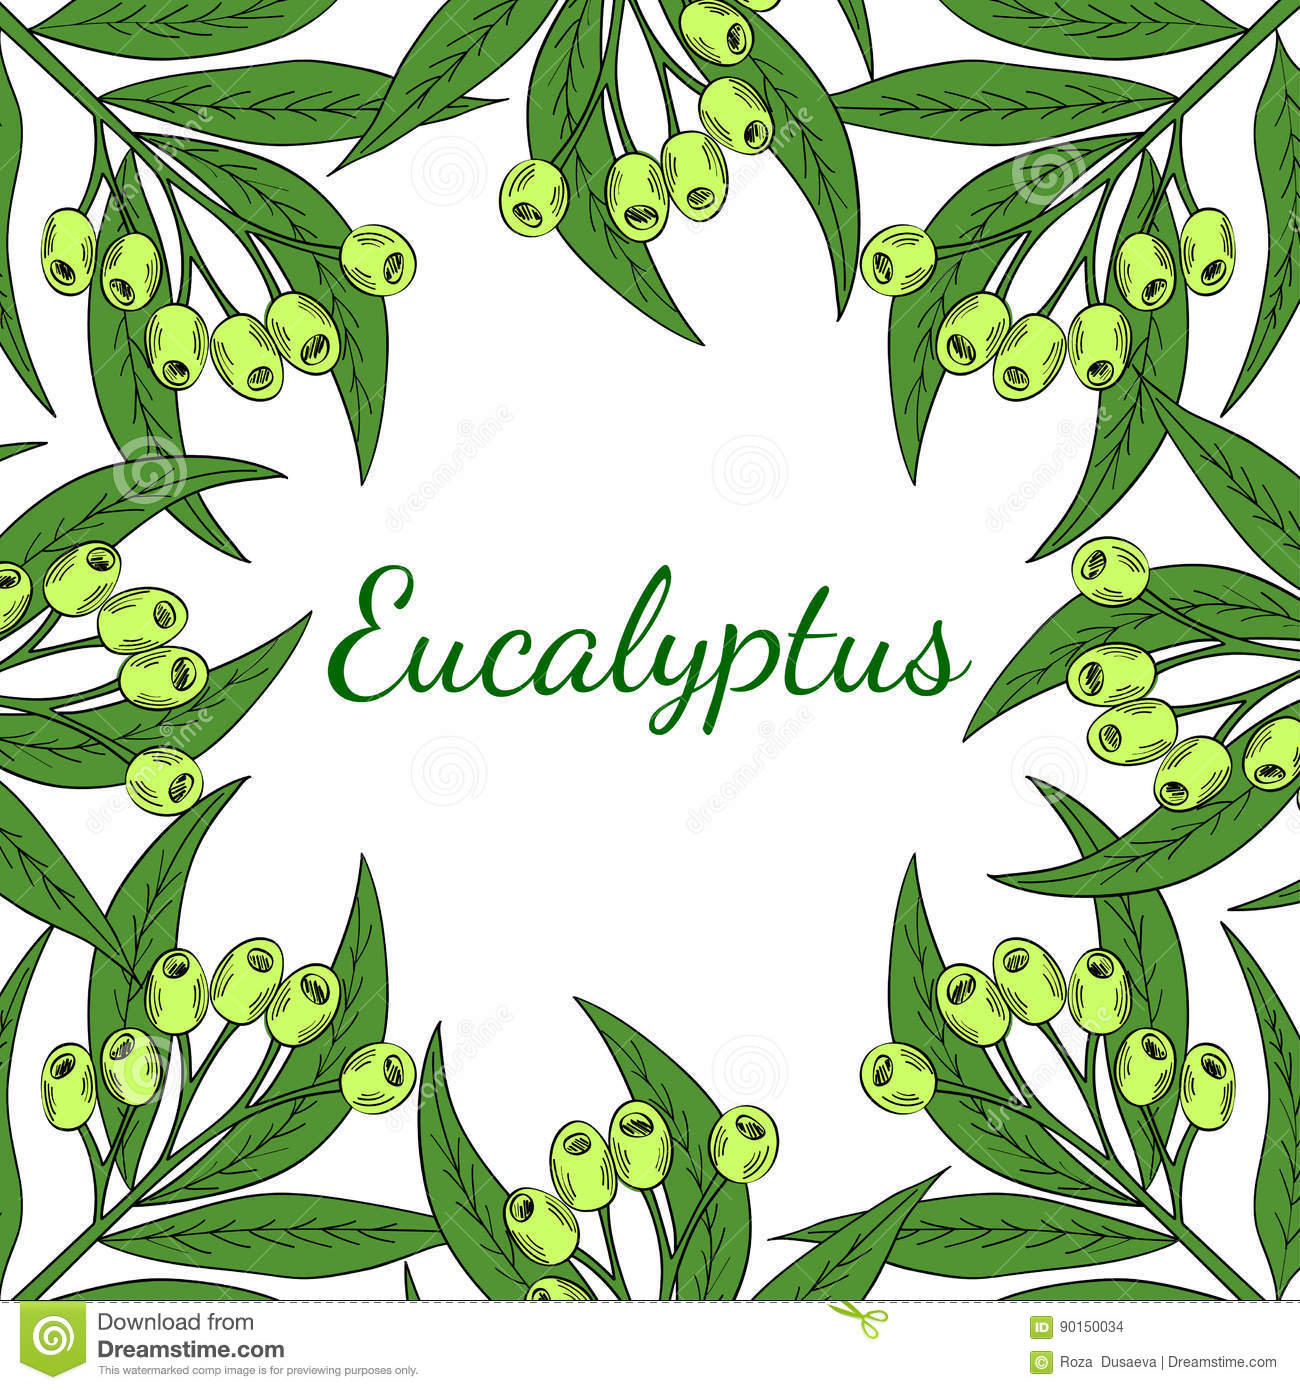 Eucalyptus Square Banner In Color Stock Vector Illustration Of Hair Isolated 90150034